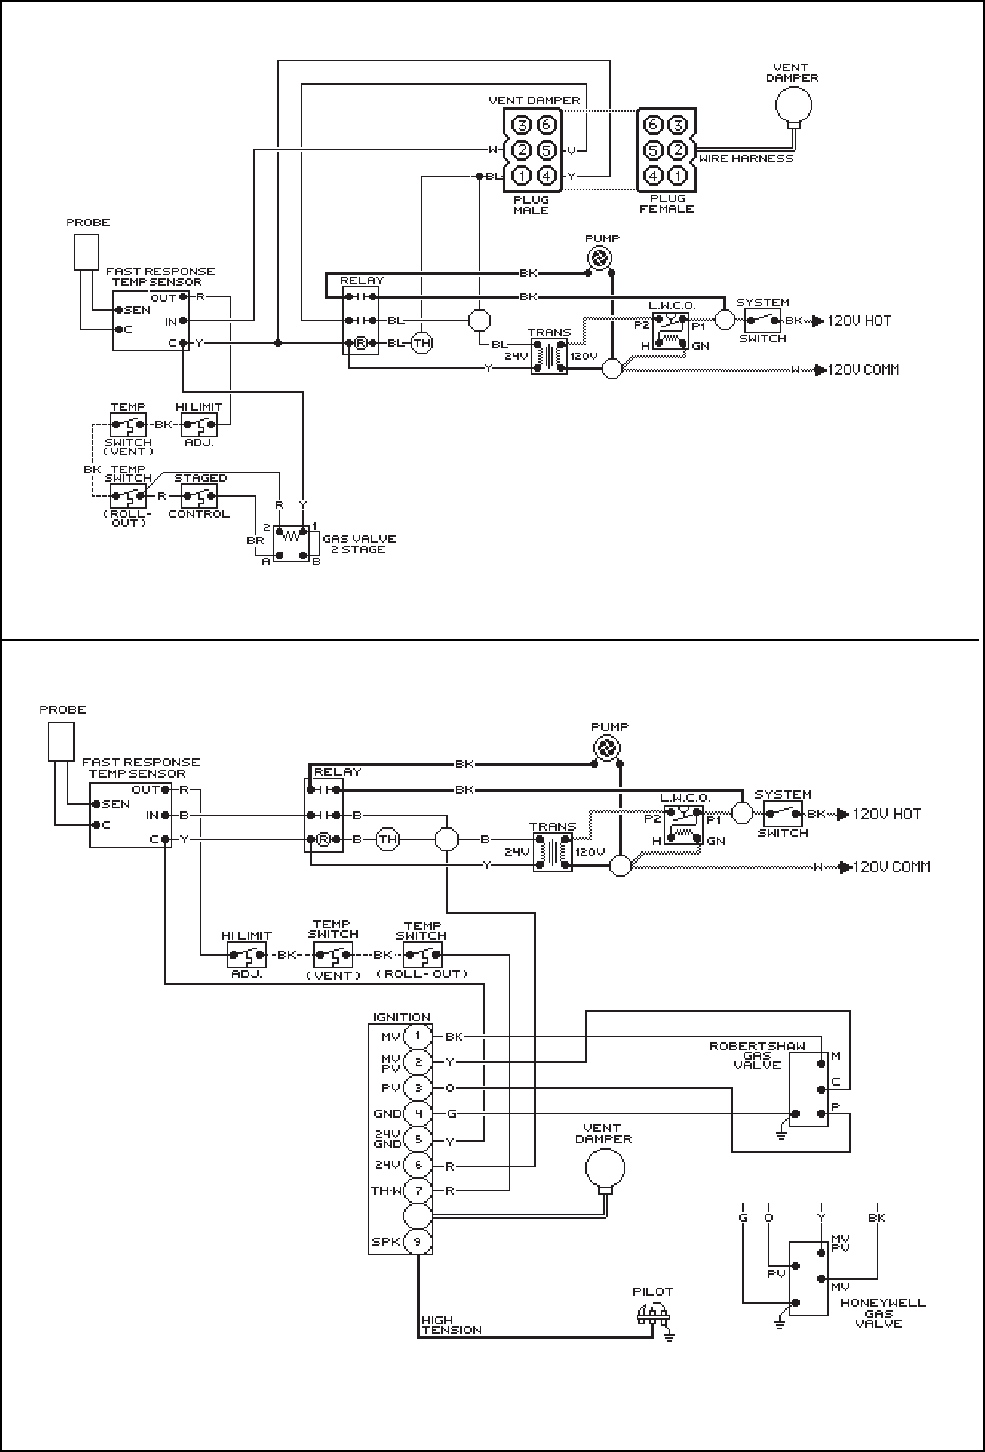 iid wiring diagram page 22 of raypak boiler 0180b user guide manualsonline com wiring diagram standing pilot low water